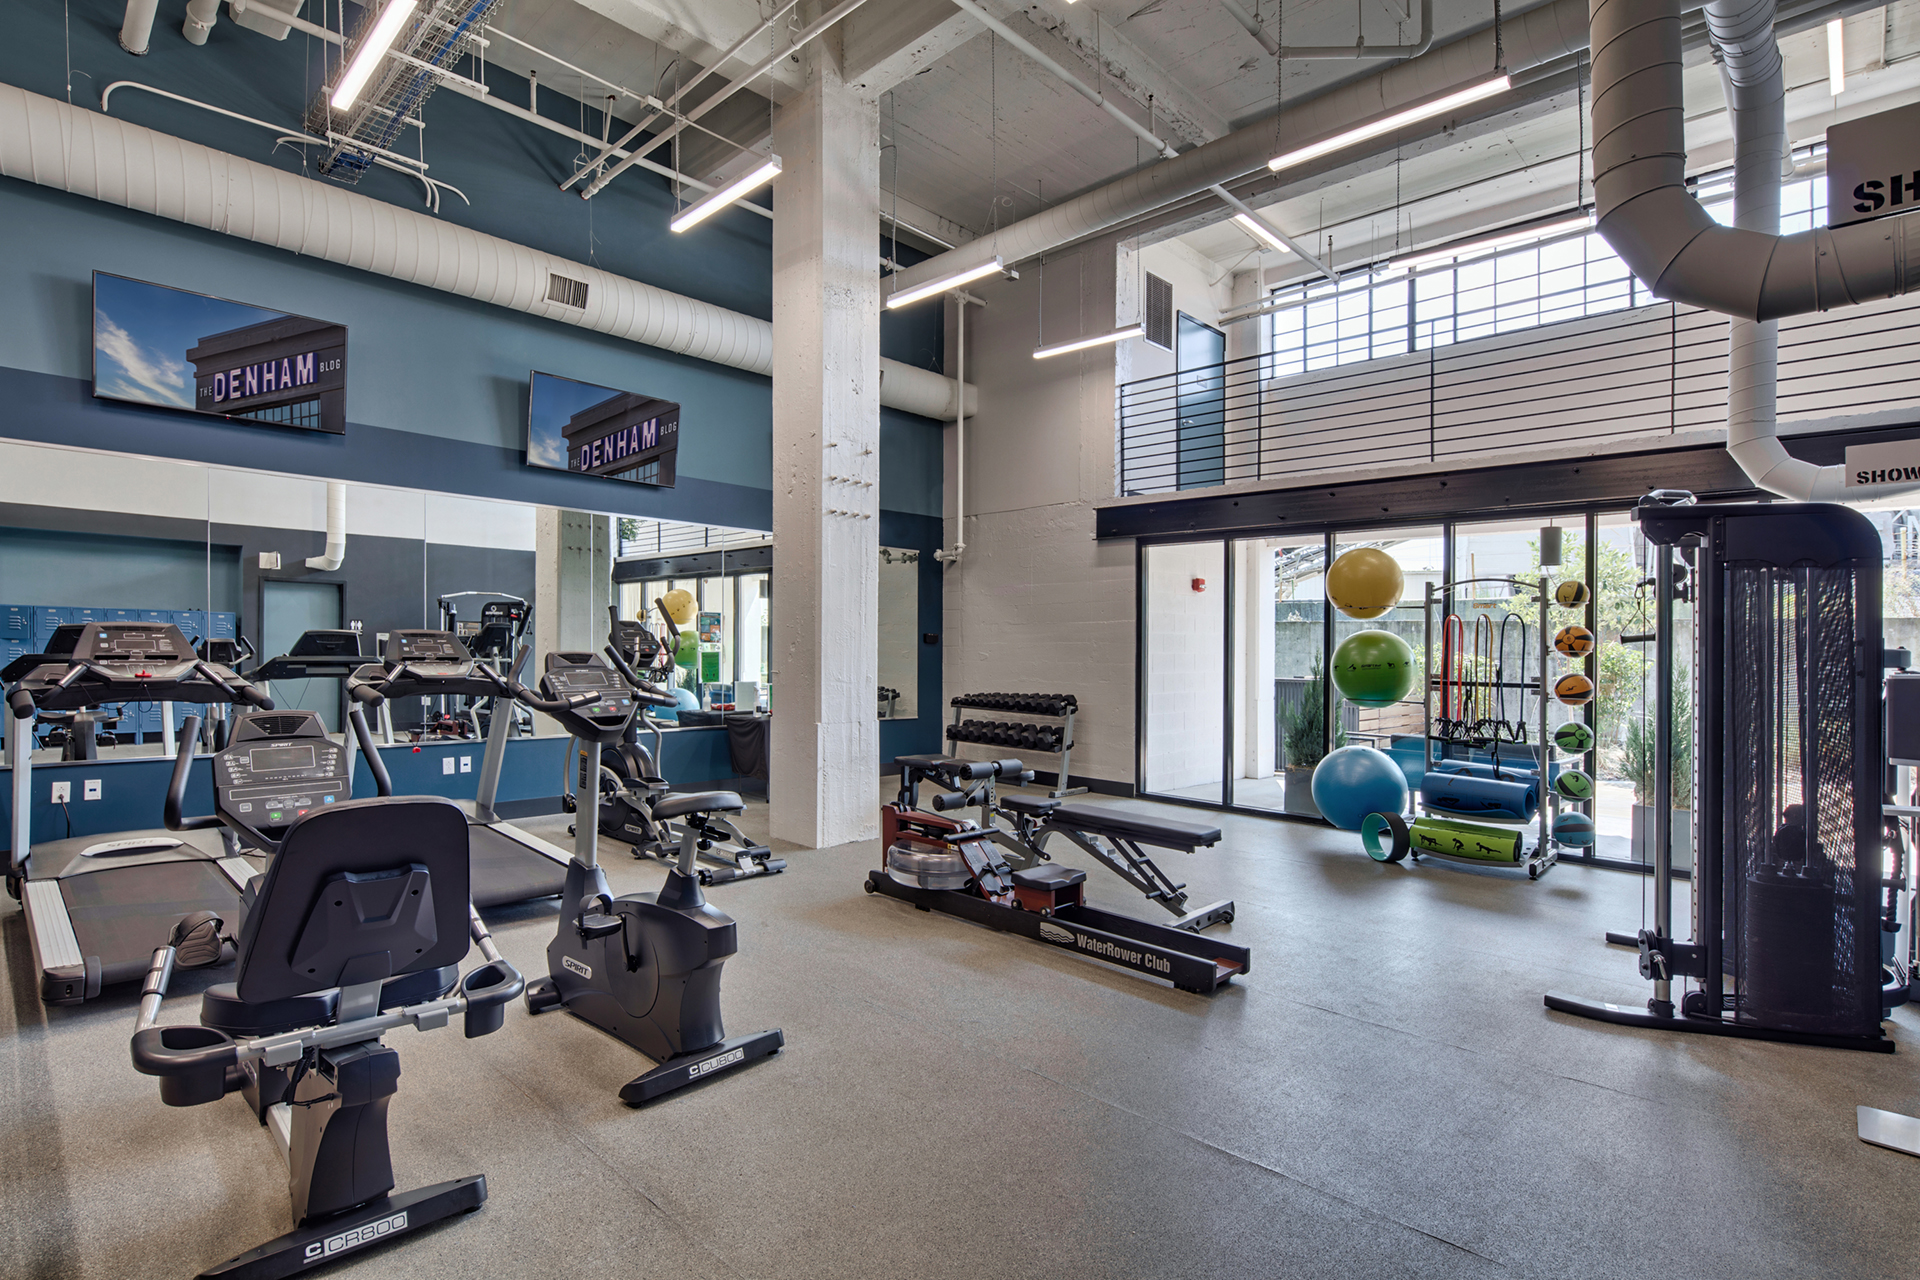 Fully equipped fitness center with cardio and weight machines at The Denham Building loft apartments for rent